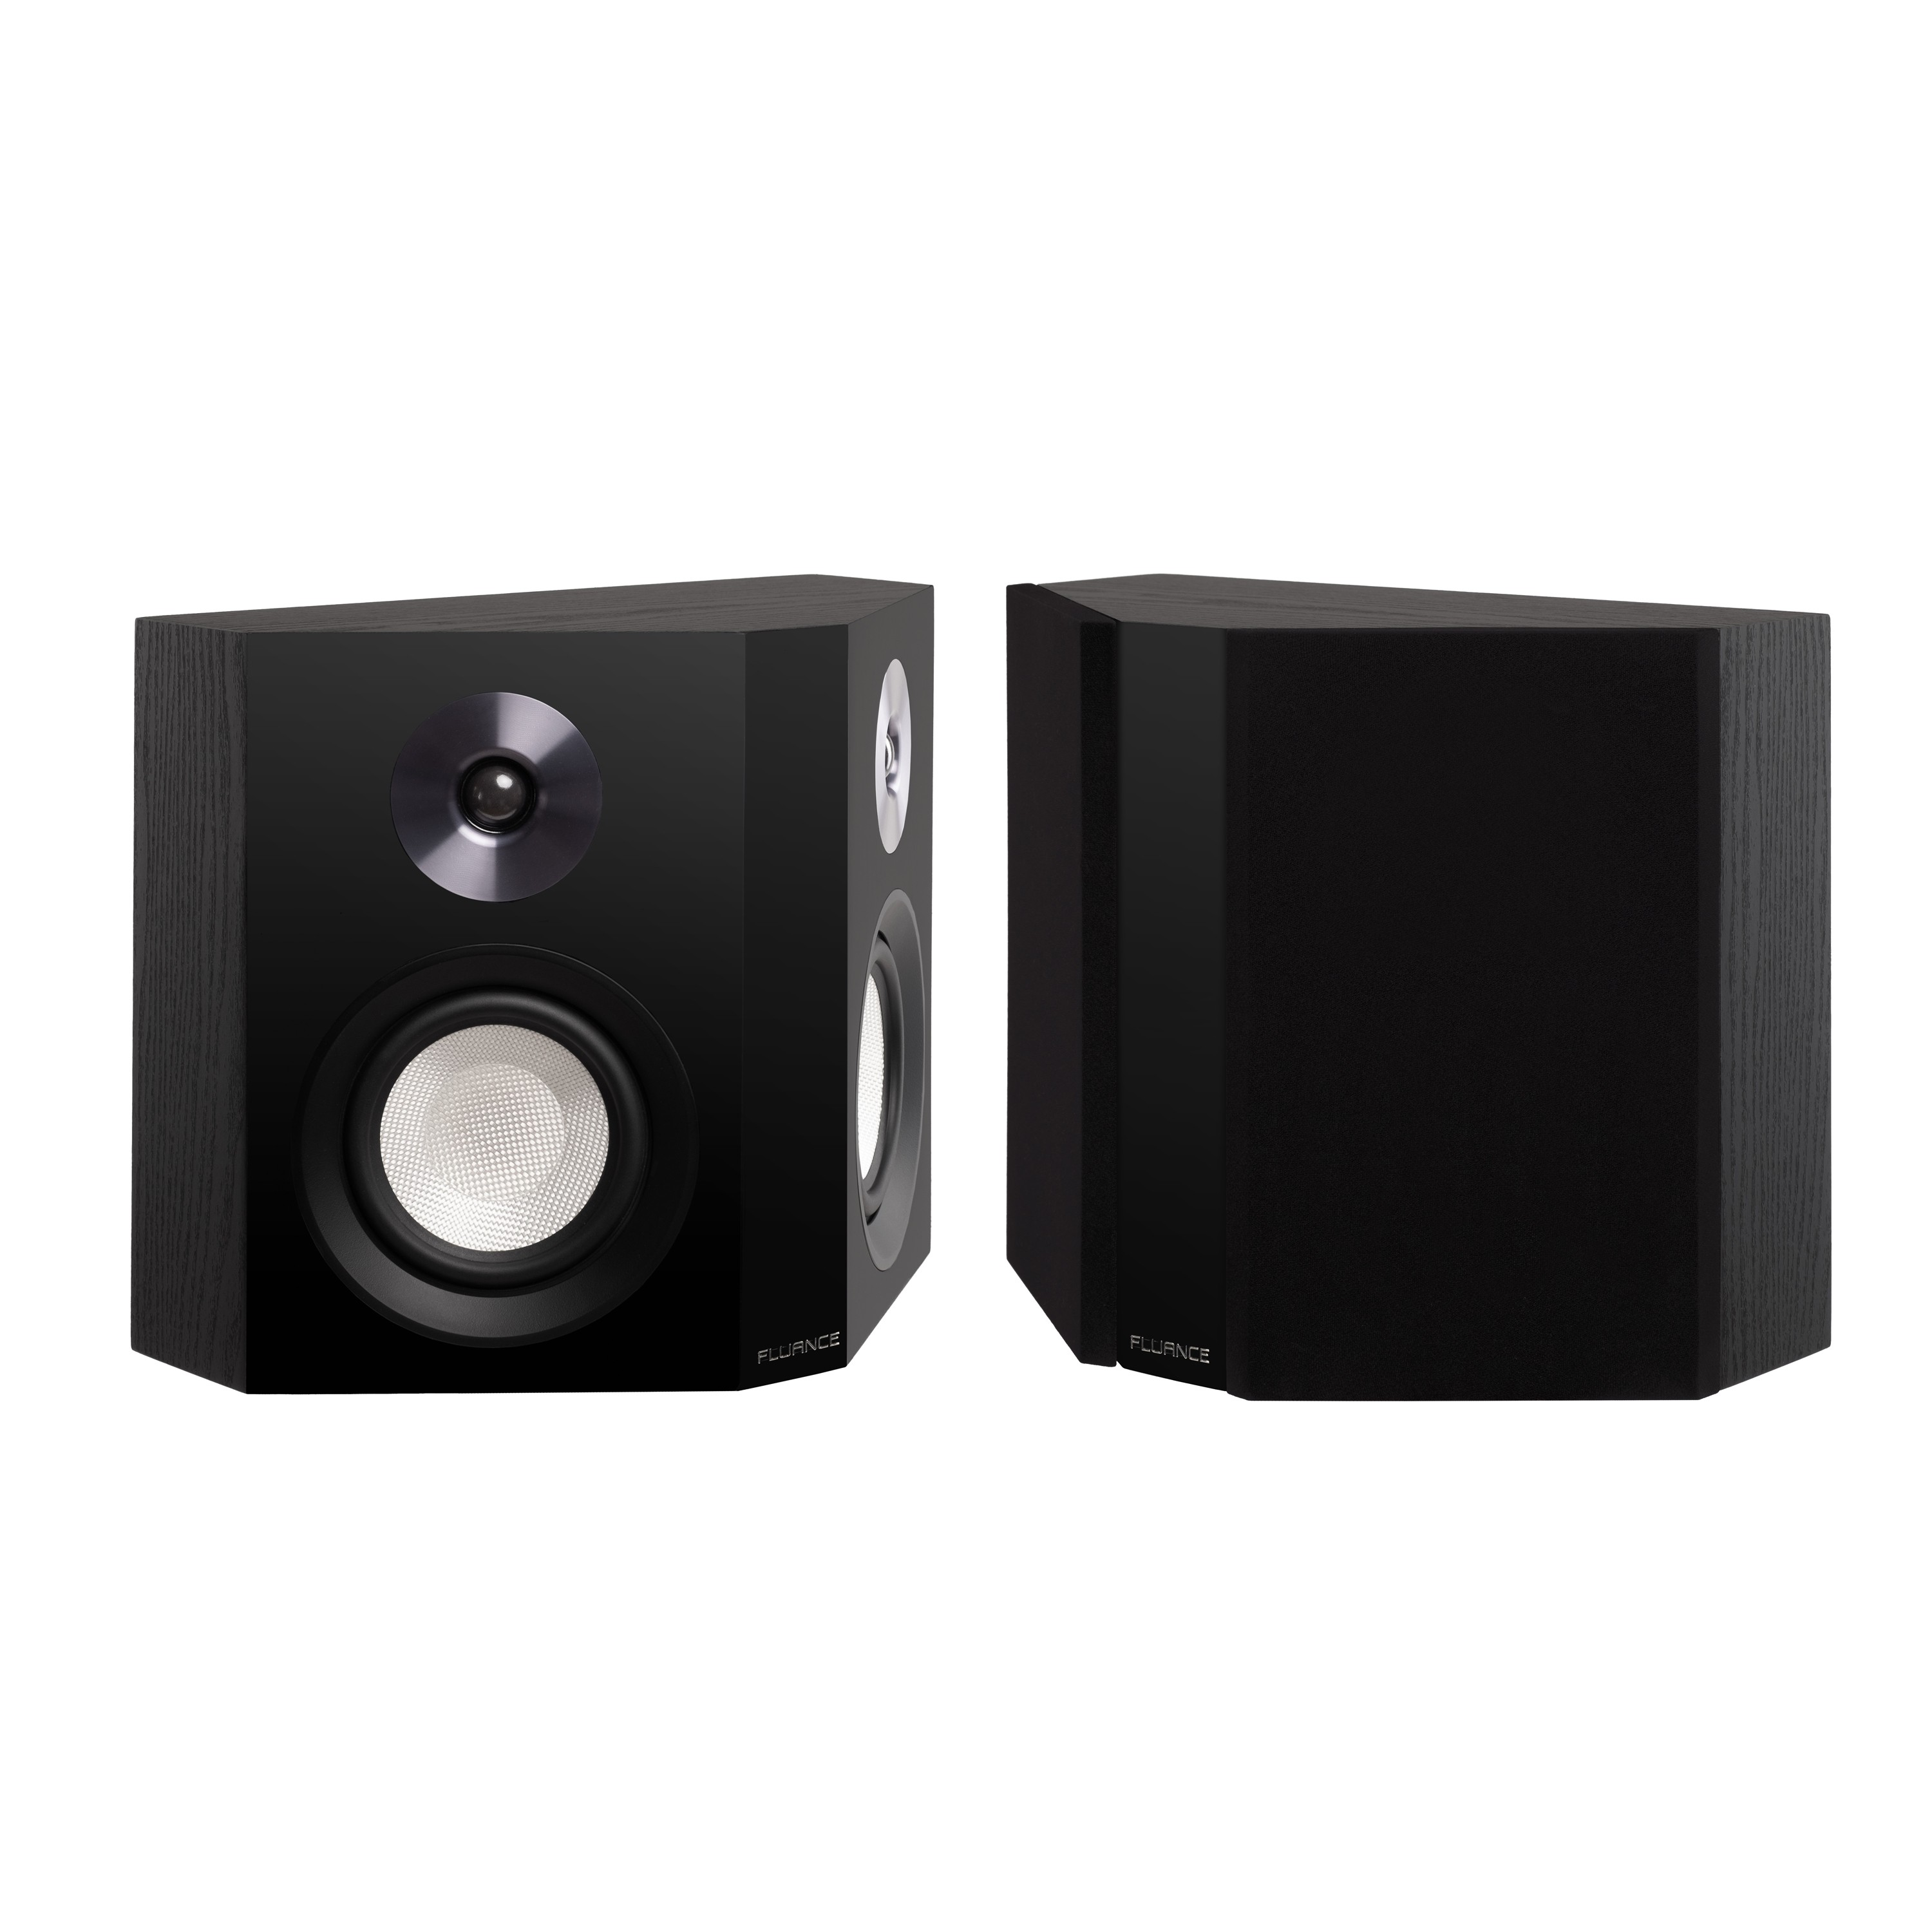 XLBP Bipolar Surround Sound Speakers